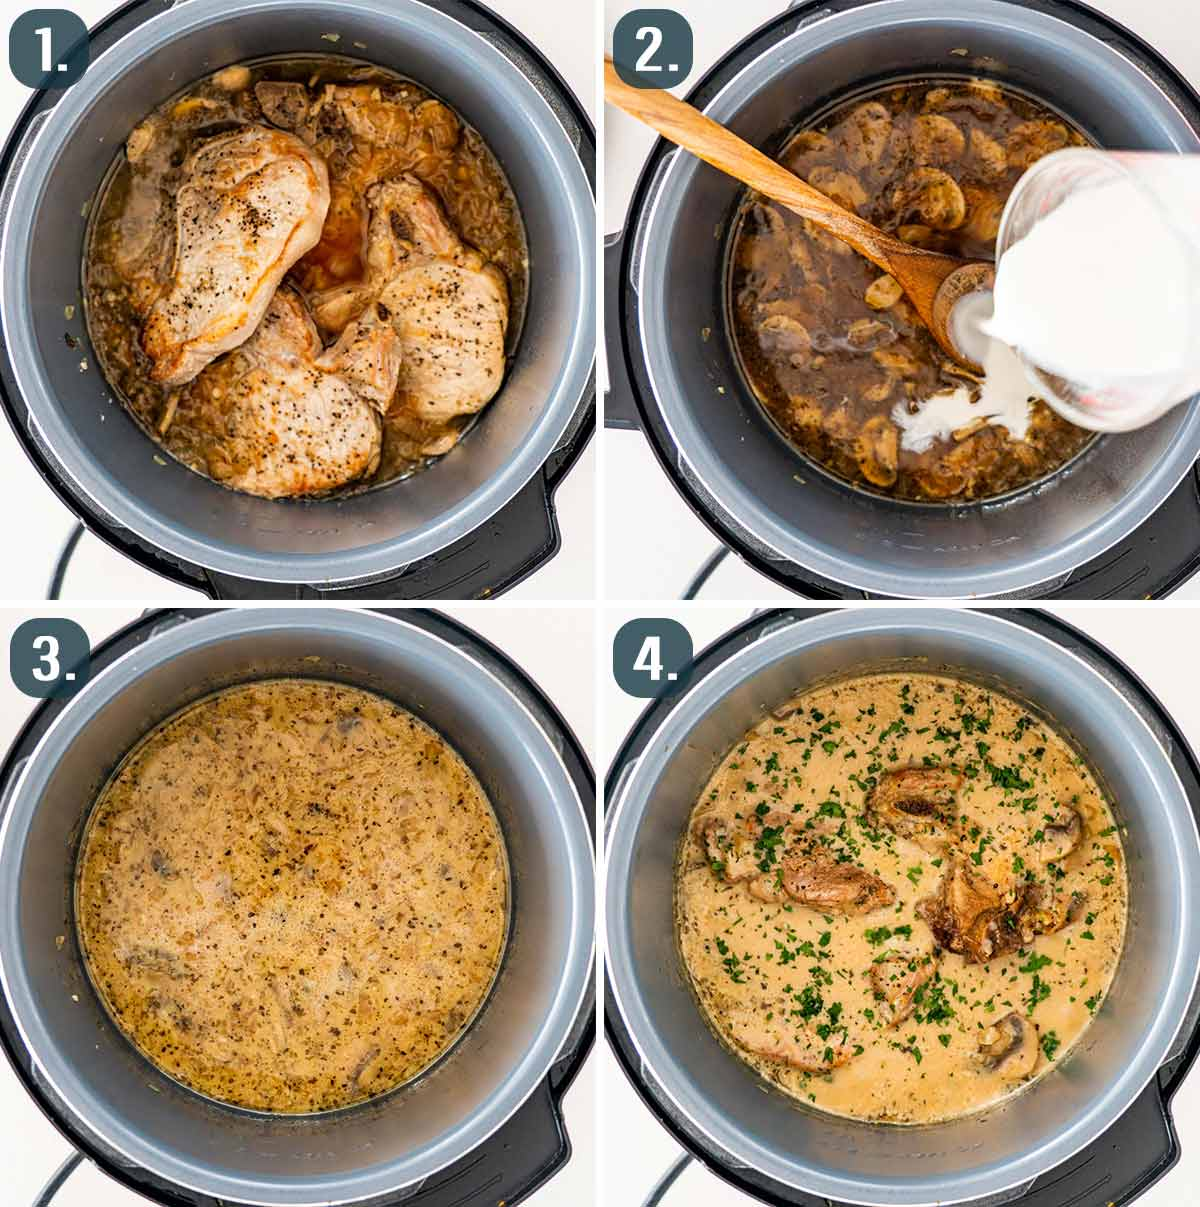 proces shots showing how to finish pork chops with mushroom gravy in the instant pot.